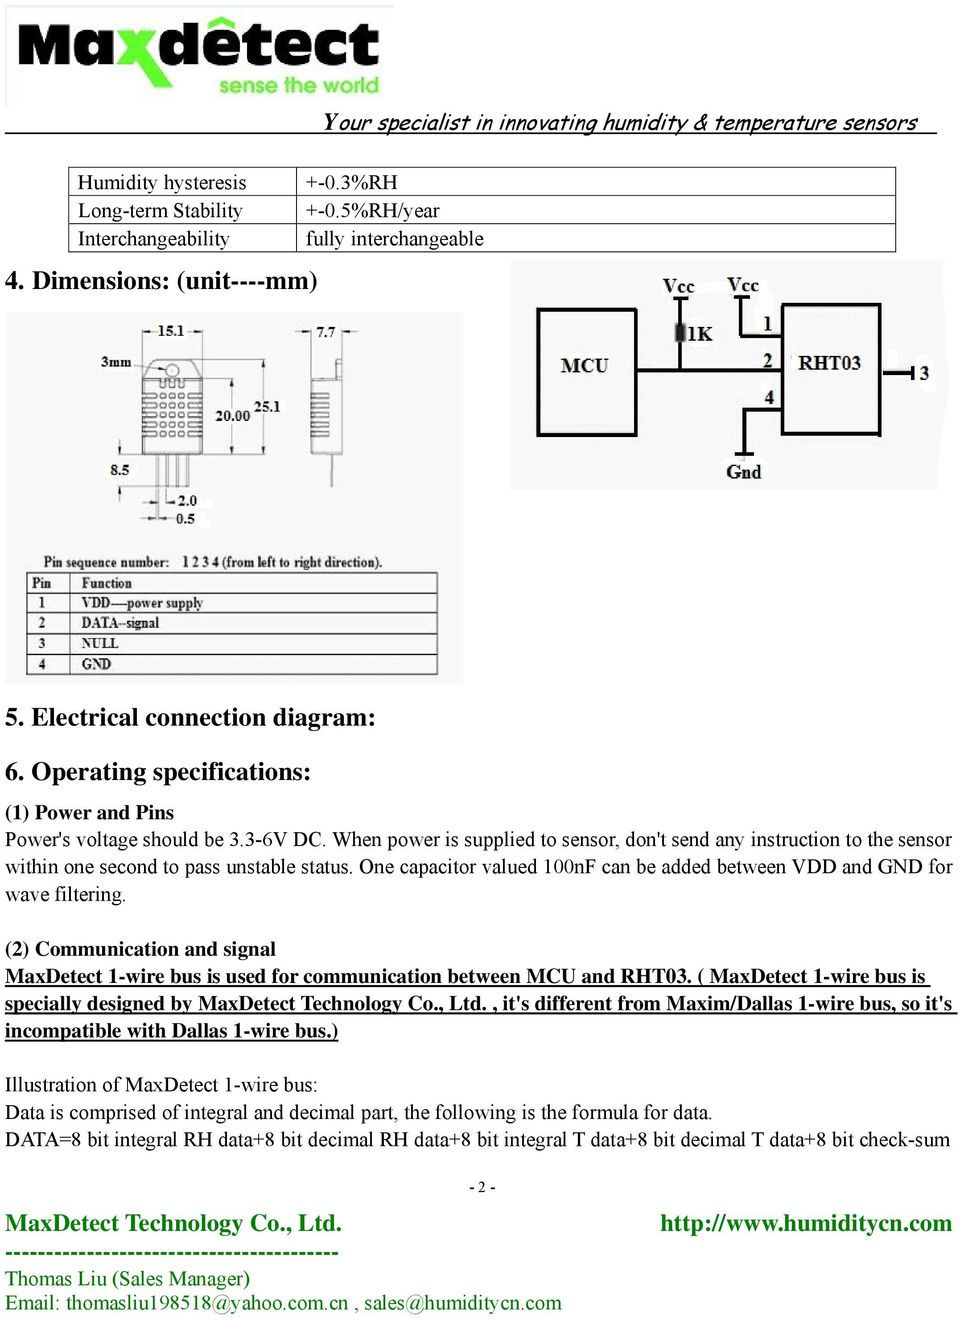 Digital Relative Humidity Temperature Sensor Rht03 Pdf Two Wire Gauge Wiring Diagram One Capacitor Valued 100nf Can Be Added Between Vdd And Gnd For Wave Filtering